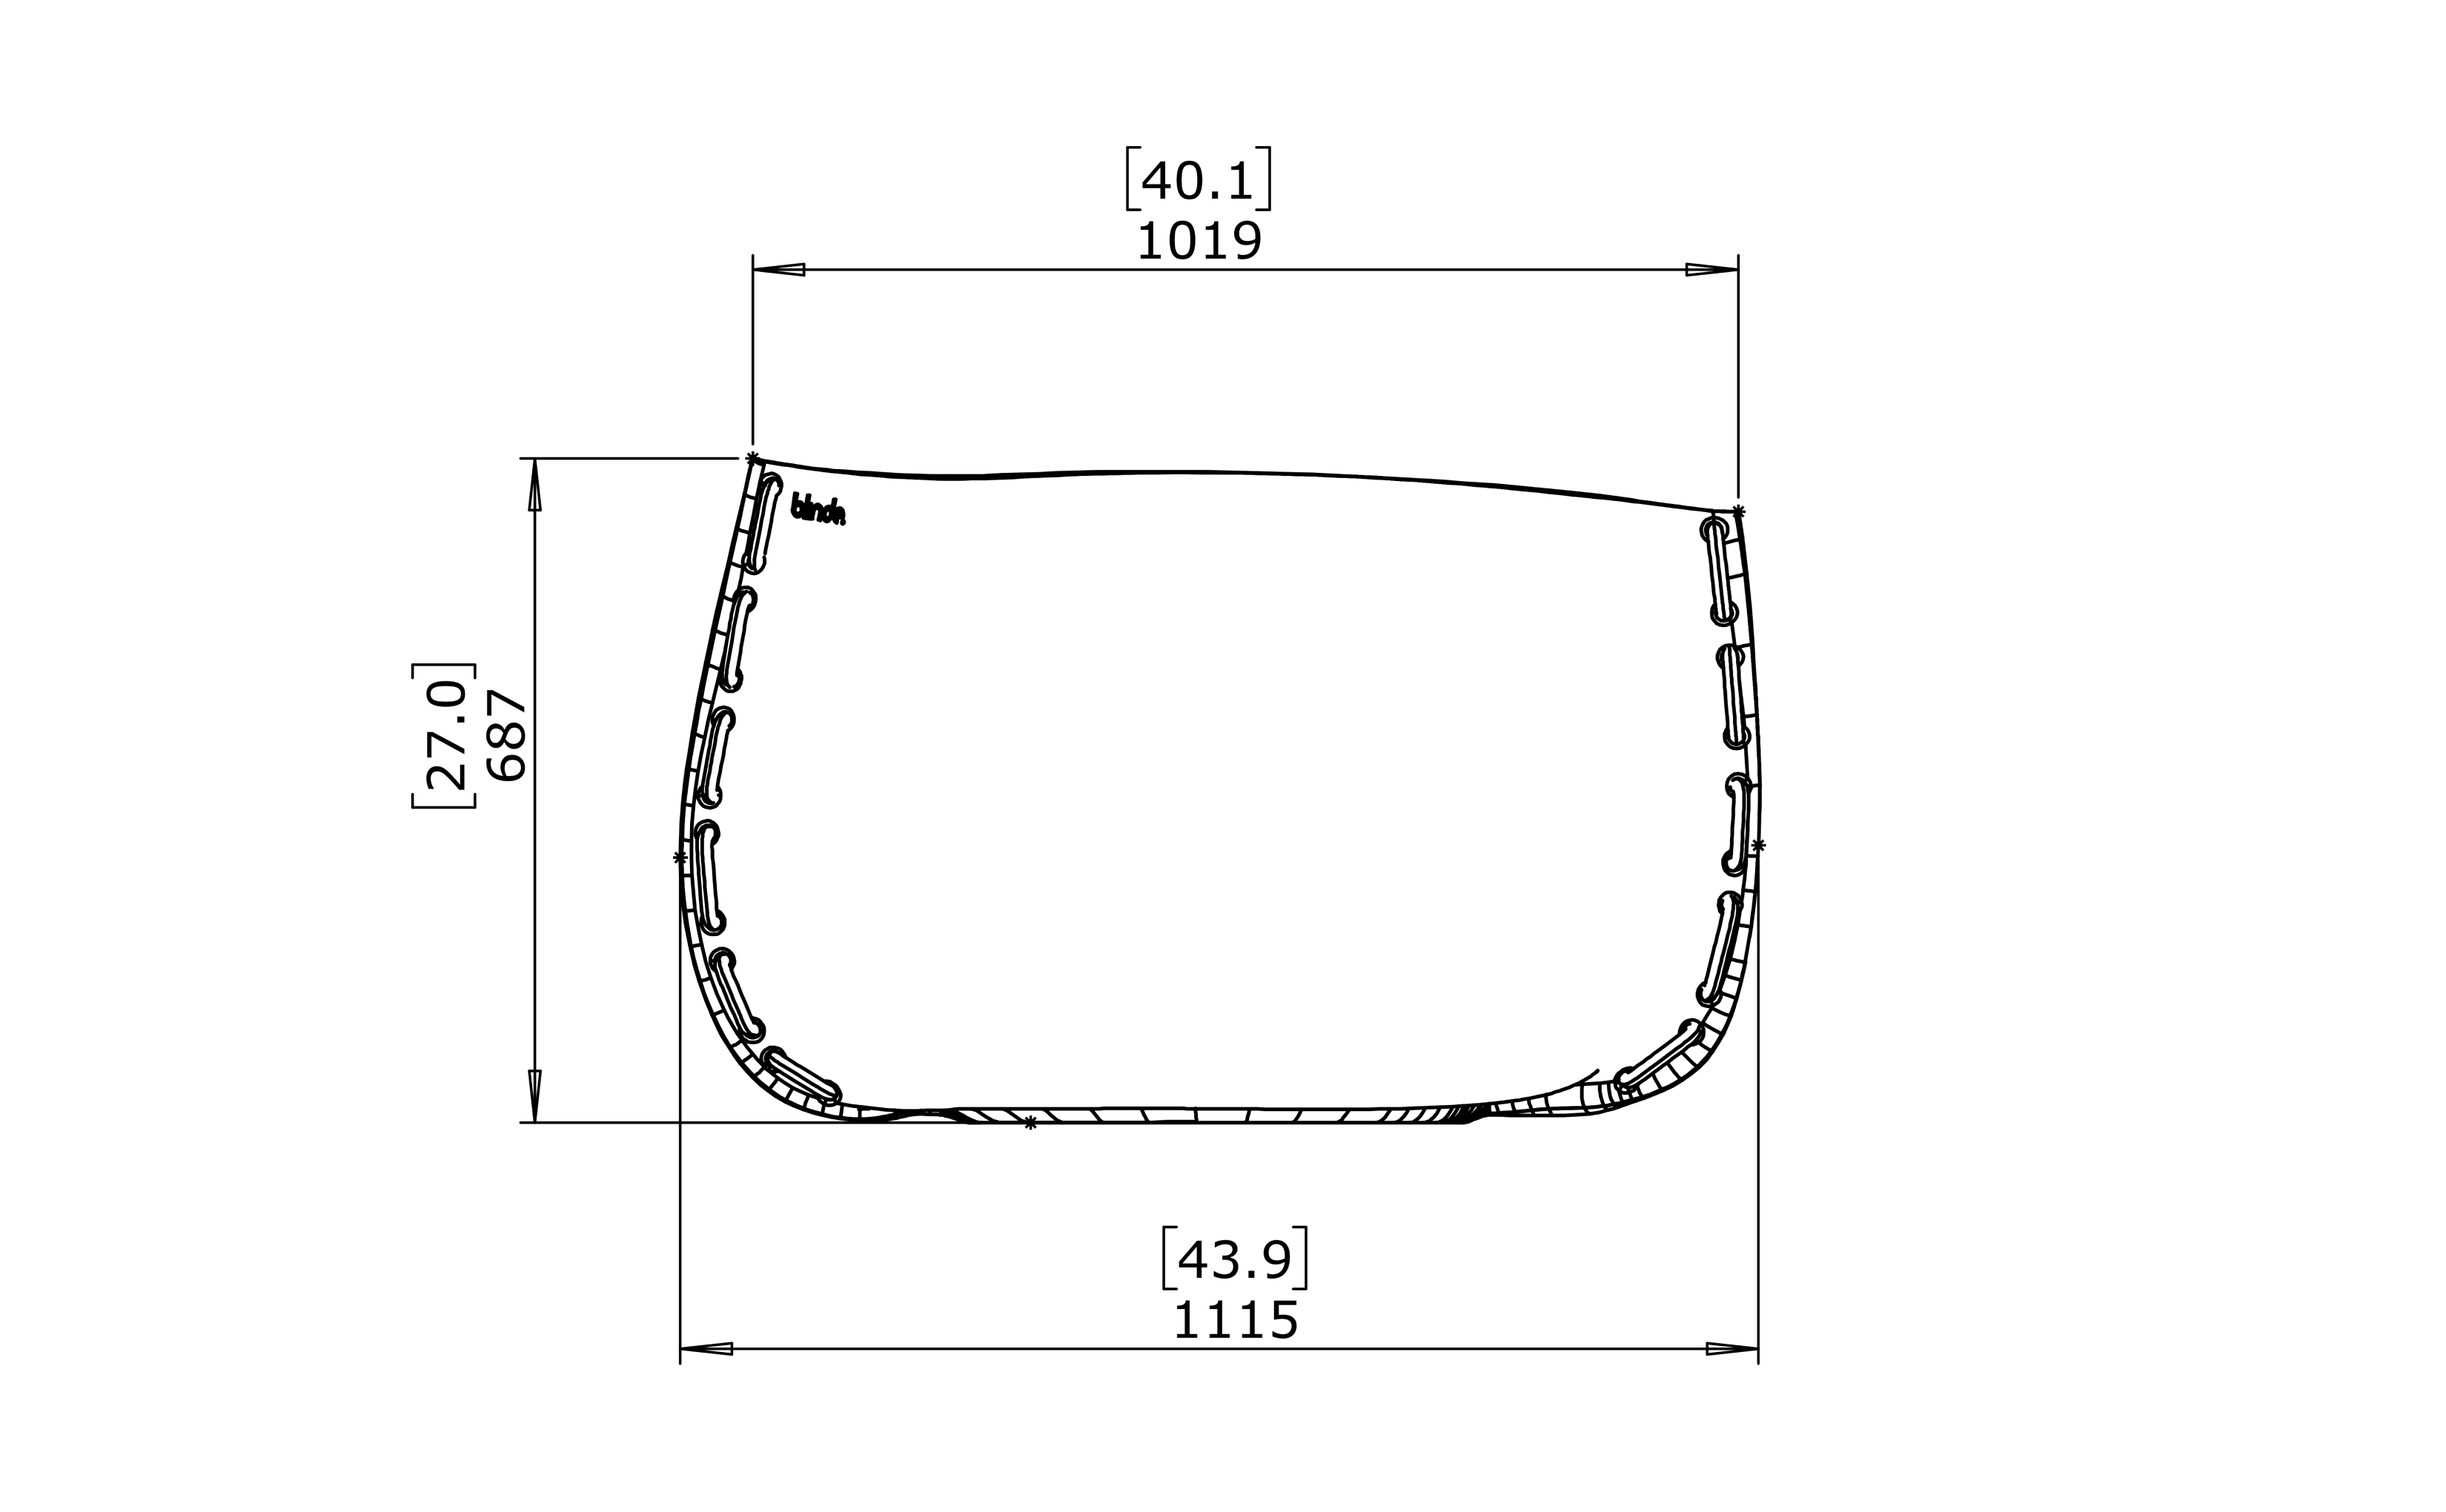 stitch-100-bld.1.p.sti.100-front-view-technical-drawing-by-blinde-design.jpg